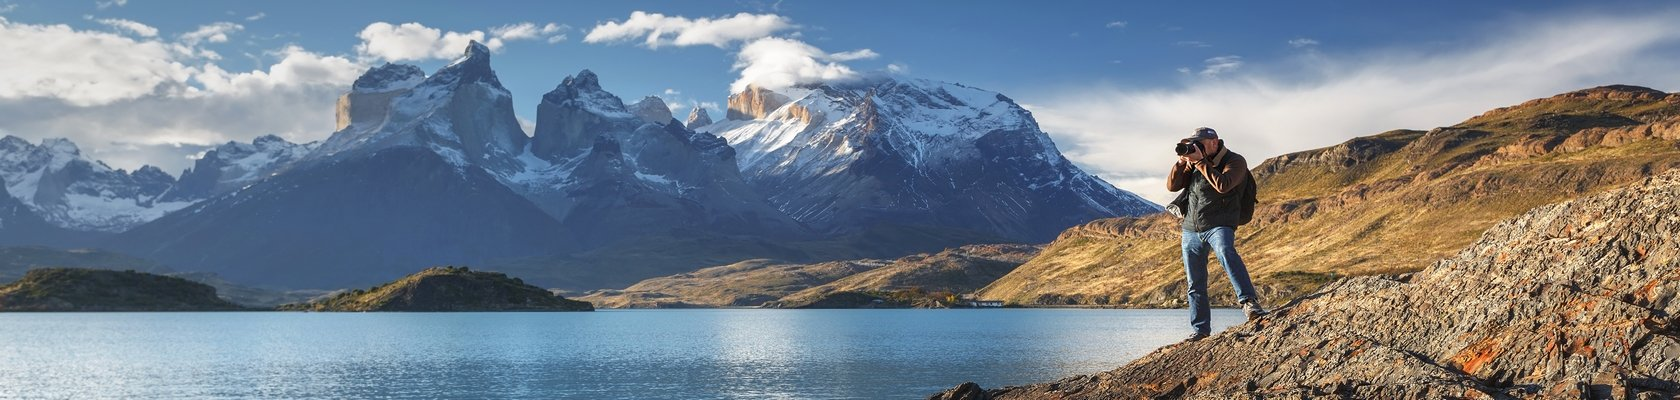 Torres del Paine Nationaal Park